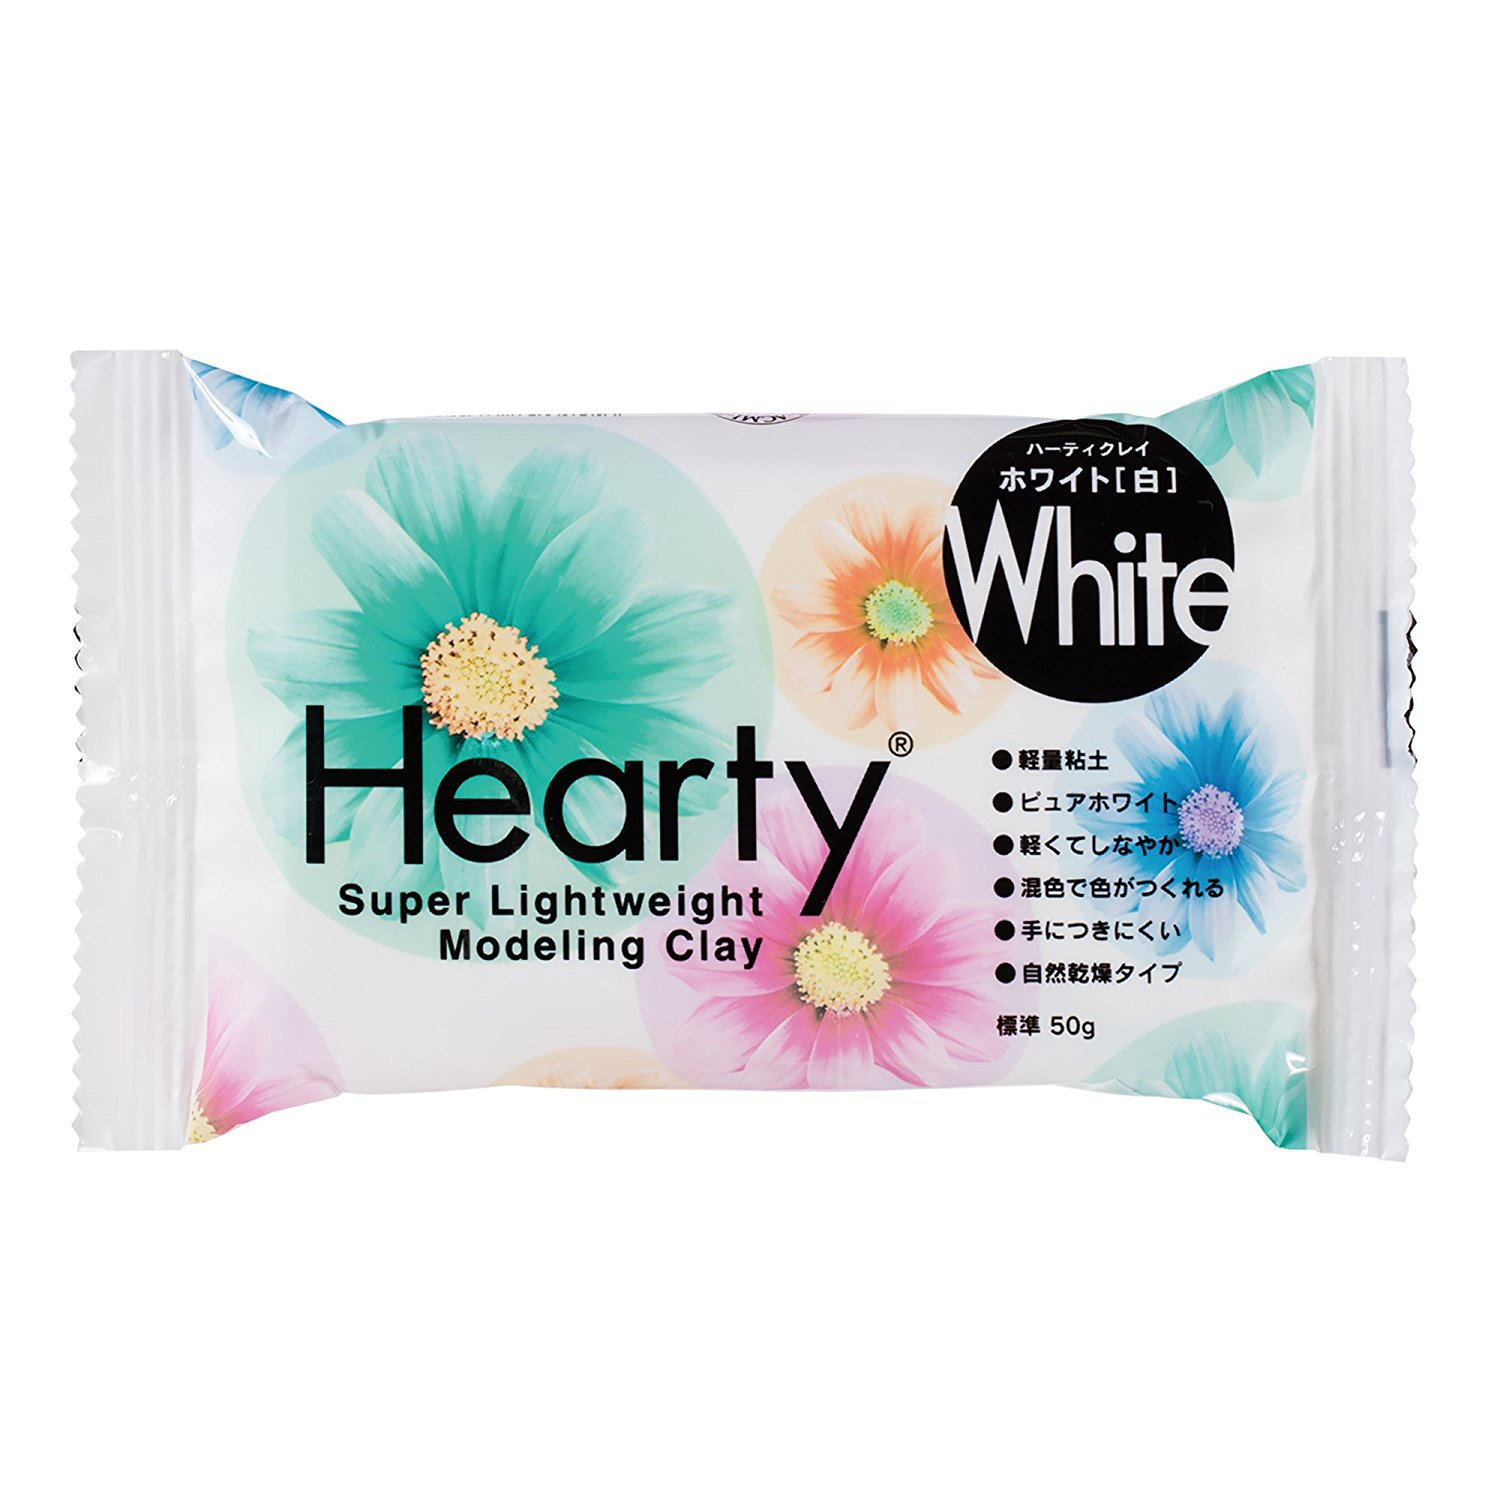 Hearty White Color Size S 50g Modeling Clay by Padico